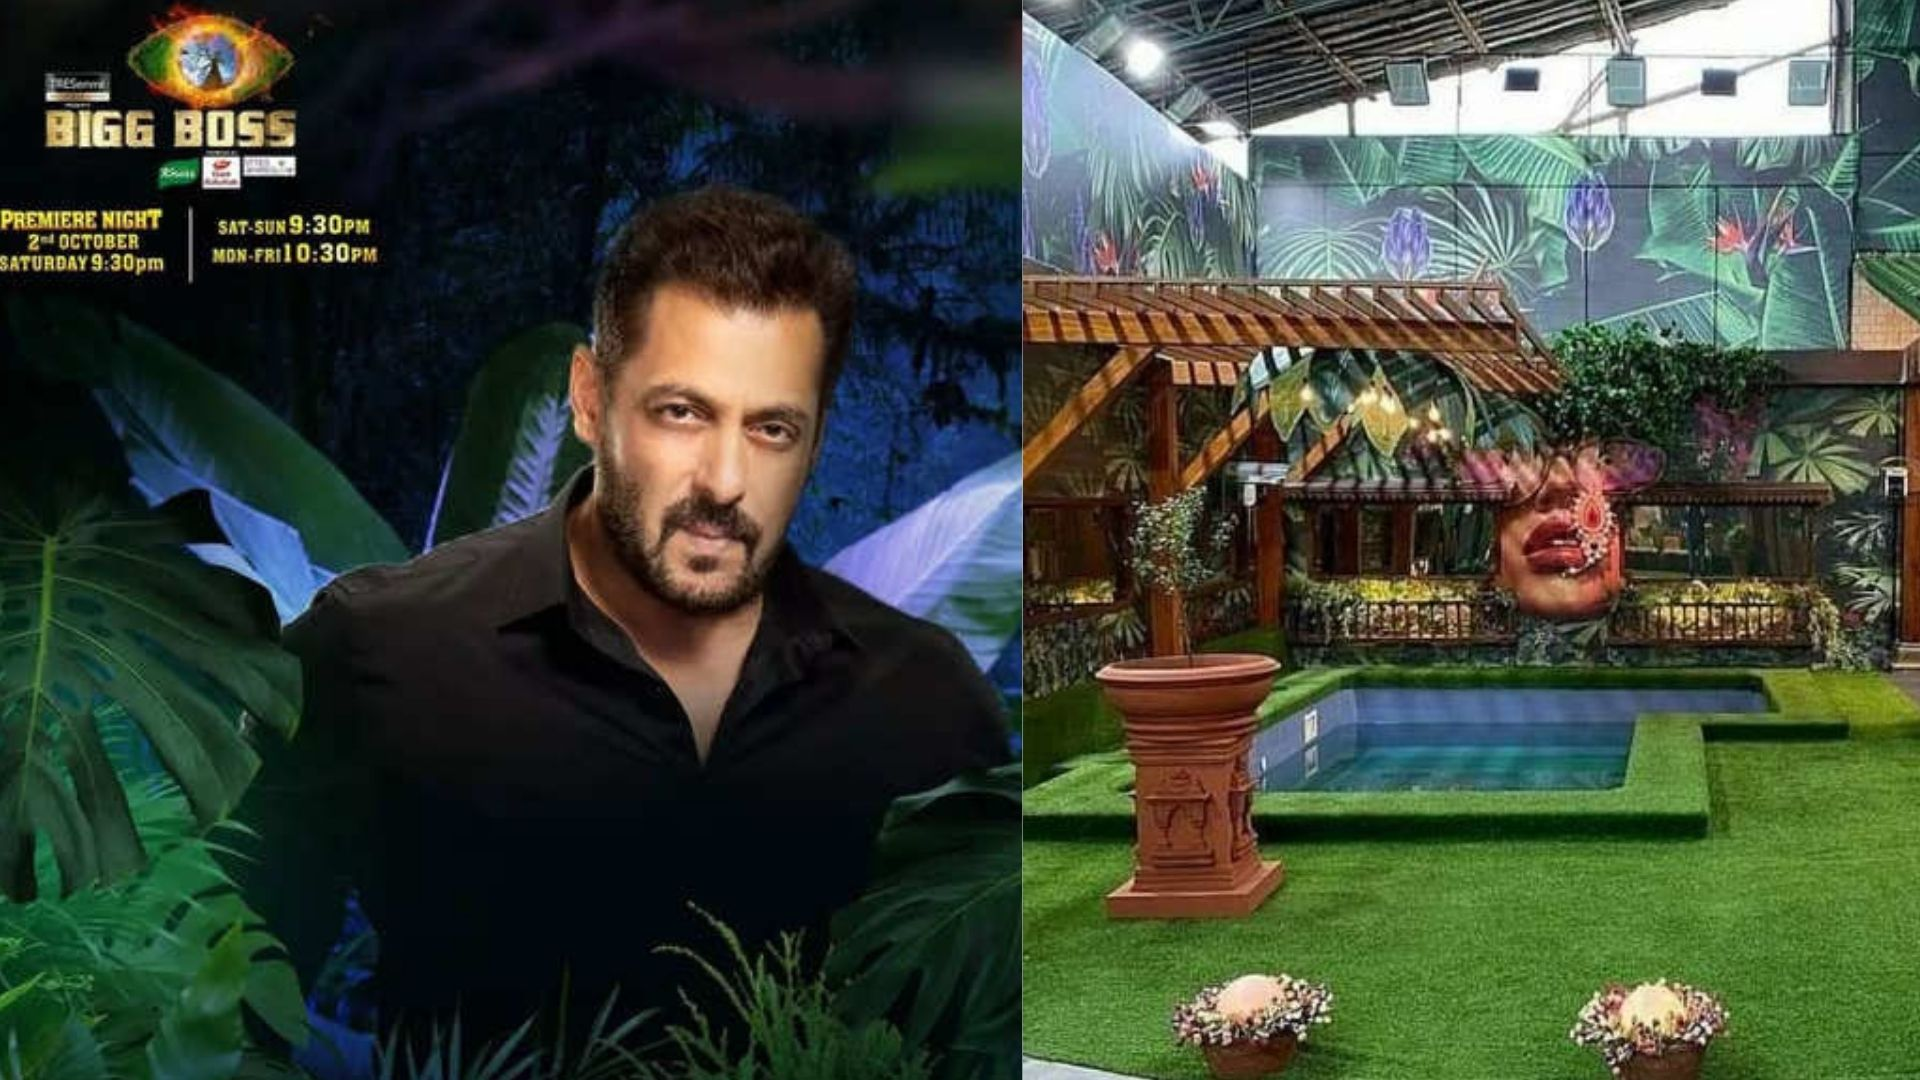 Bigg Boss 15: Pictures From The Jungle Based Theme House LEAKED Online